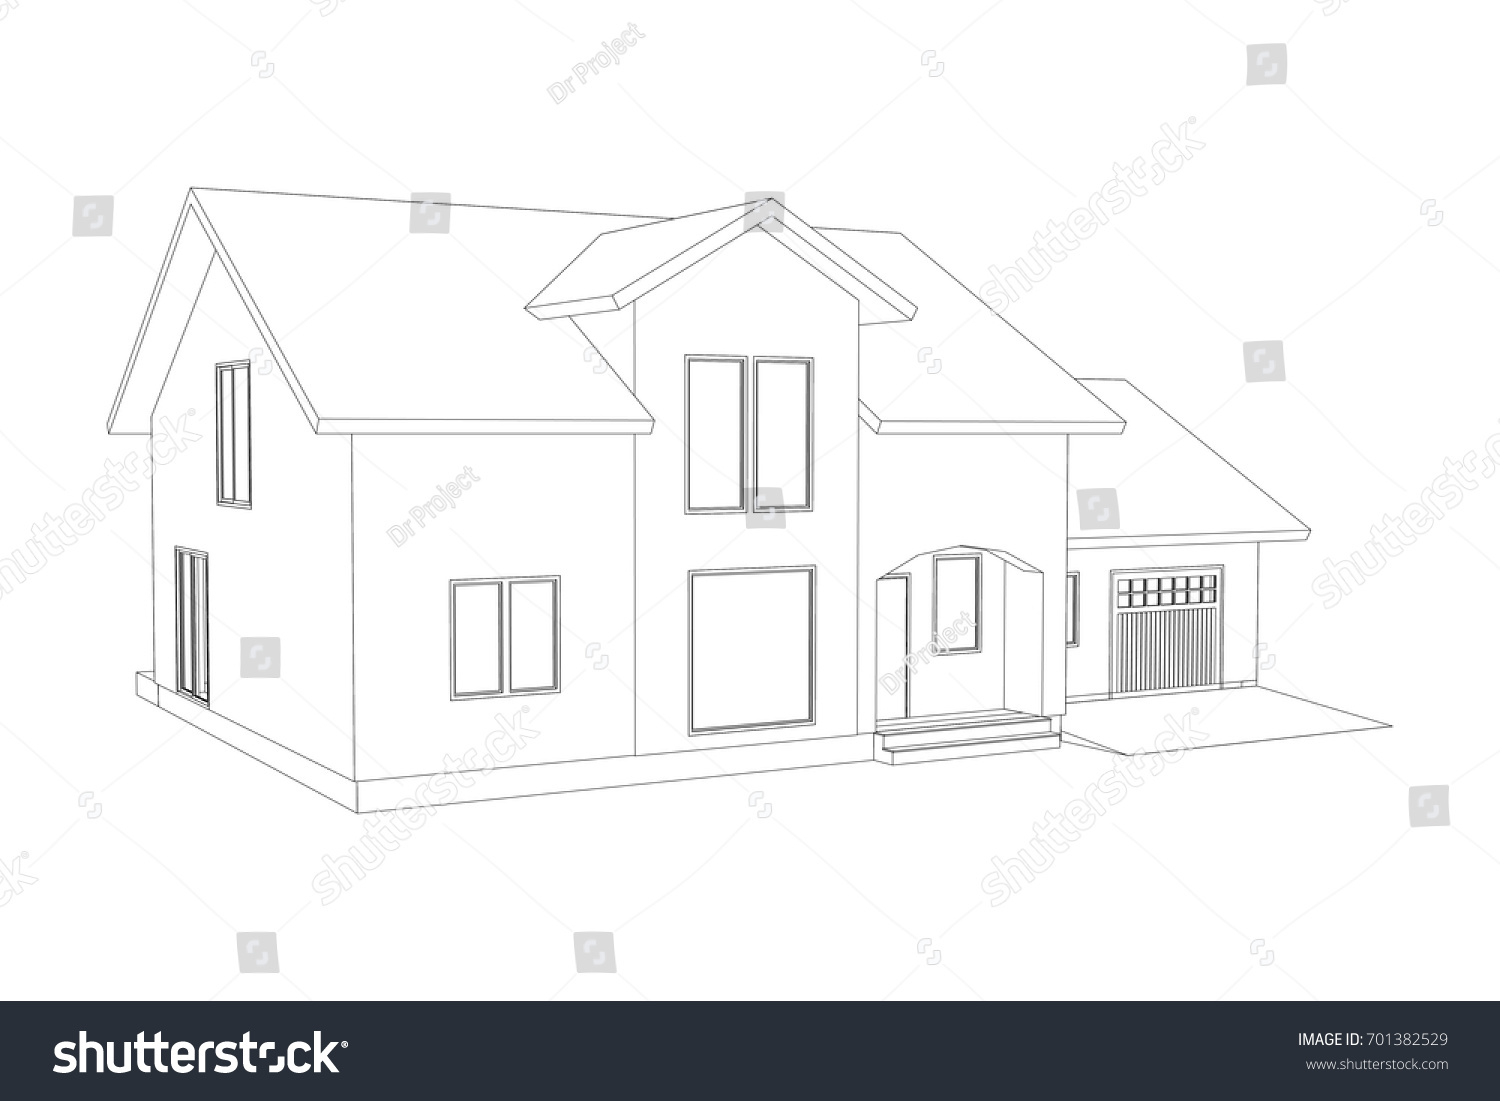 3d suburban house model drawing modern stock vector 701382529 3d suburban house model drawing of the modern building cottage project on white background malvernweather Images